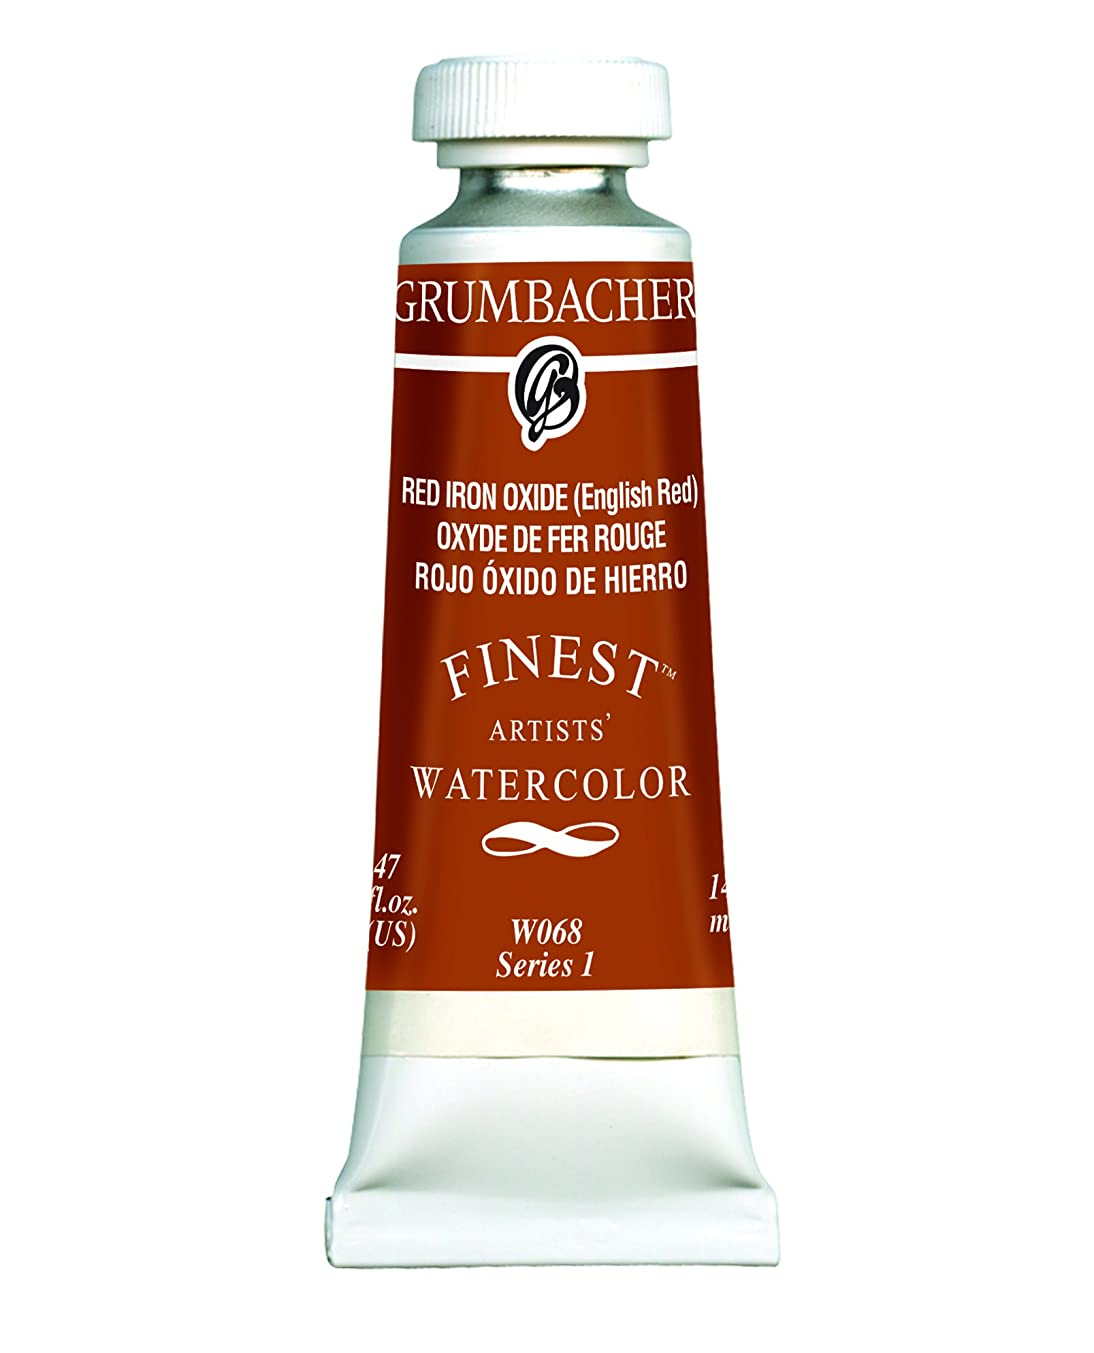 Grumbacher Finest Watercolor Paint, 14 ml/0.47 oz, Red Iron Oxide (English Red)